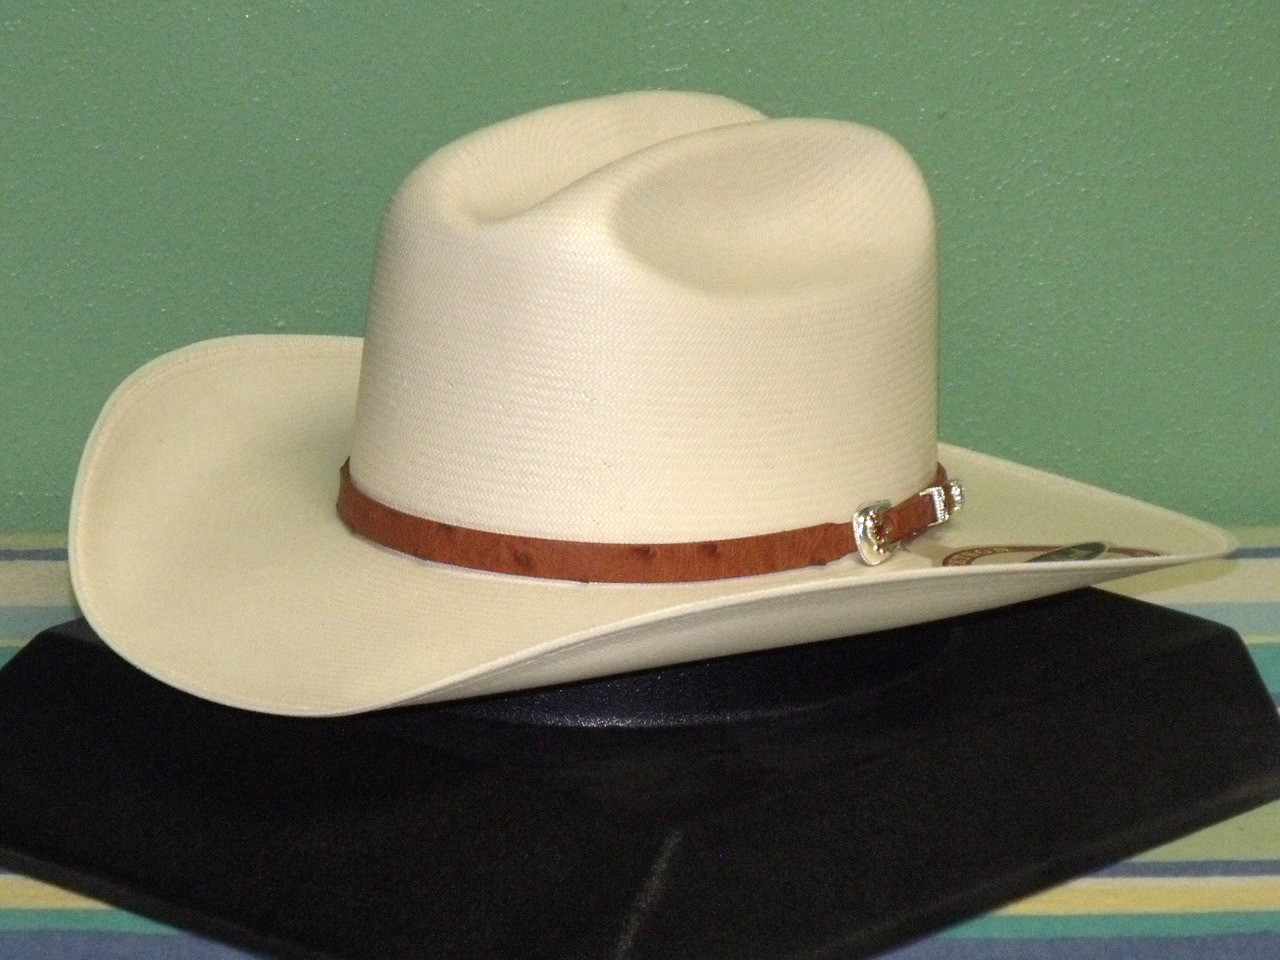 ab3e6669a1343 ... Shantung Cowboy Hat. Loading zoom. Hover over image to zoom